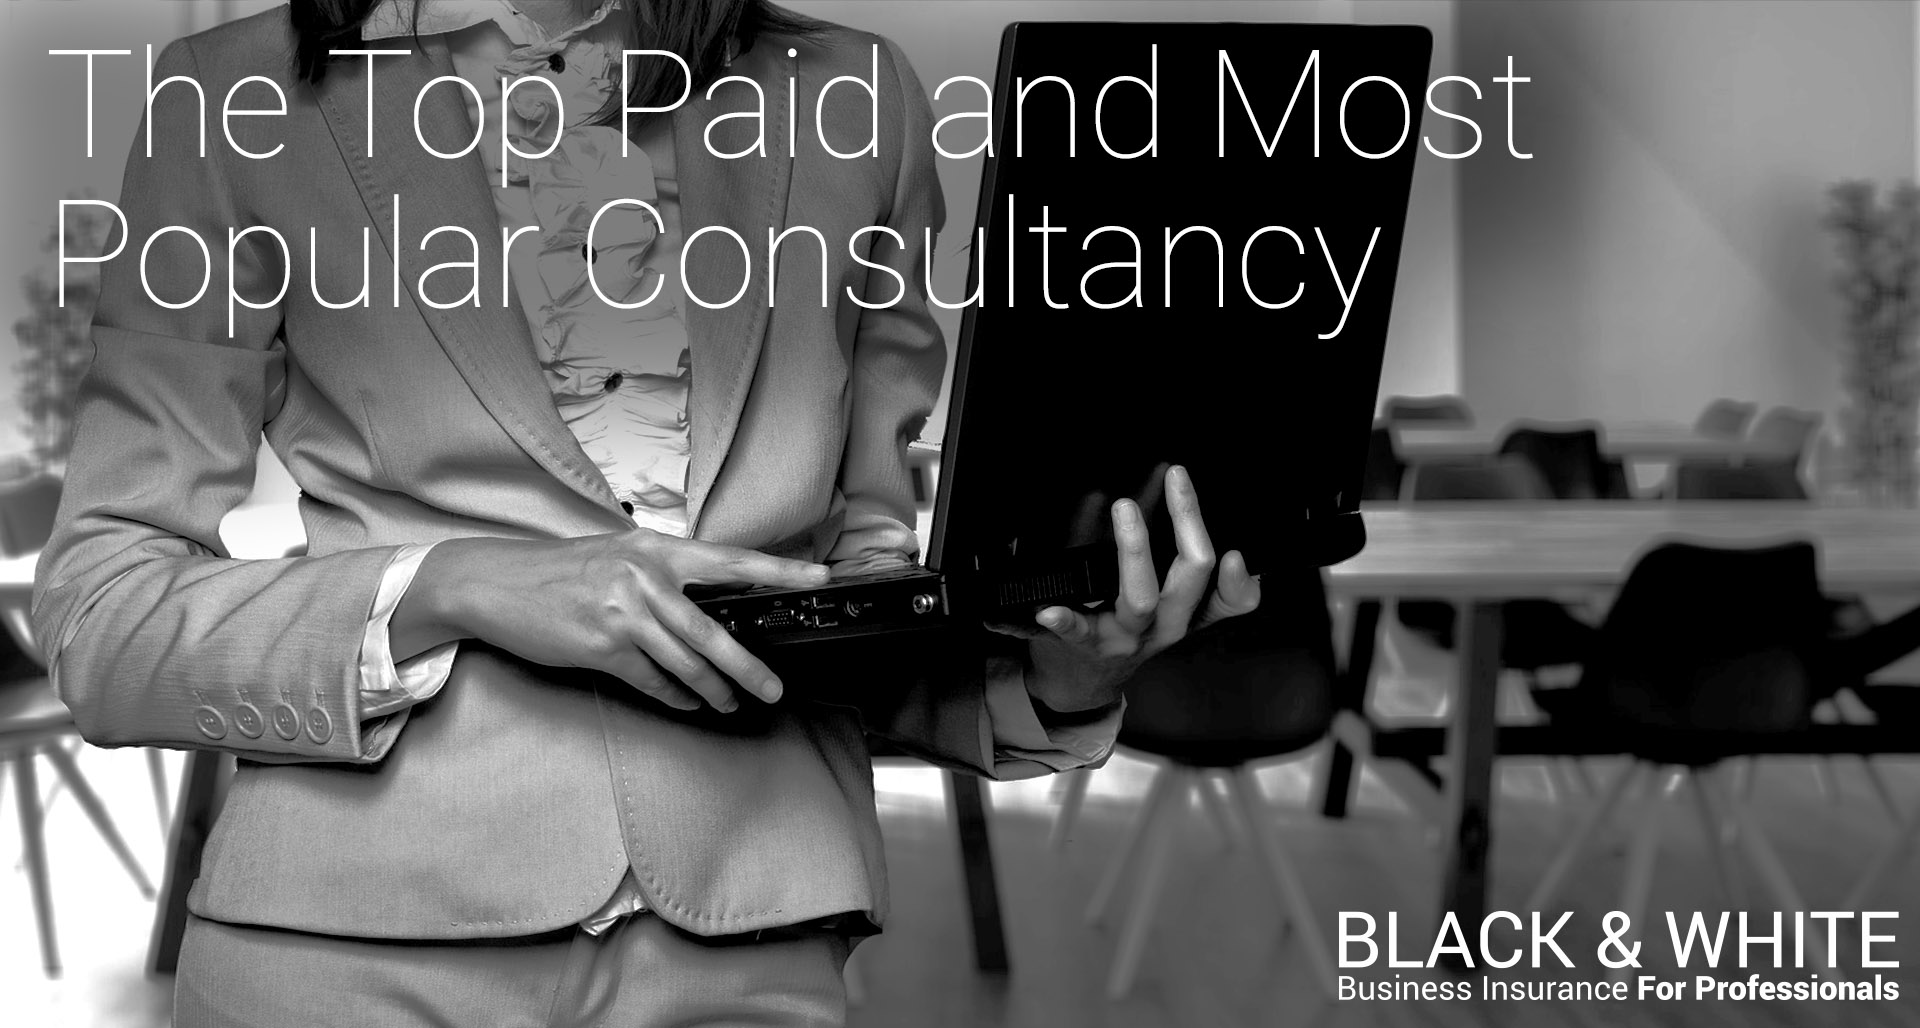 The Top Paid and Most Popular Consultancy | Black and White Insurance